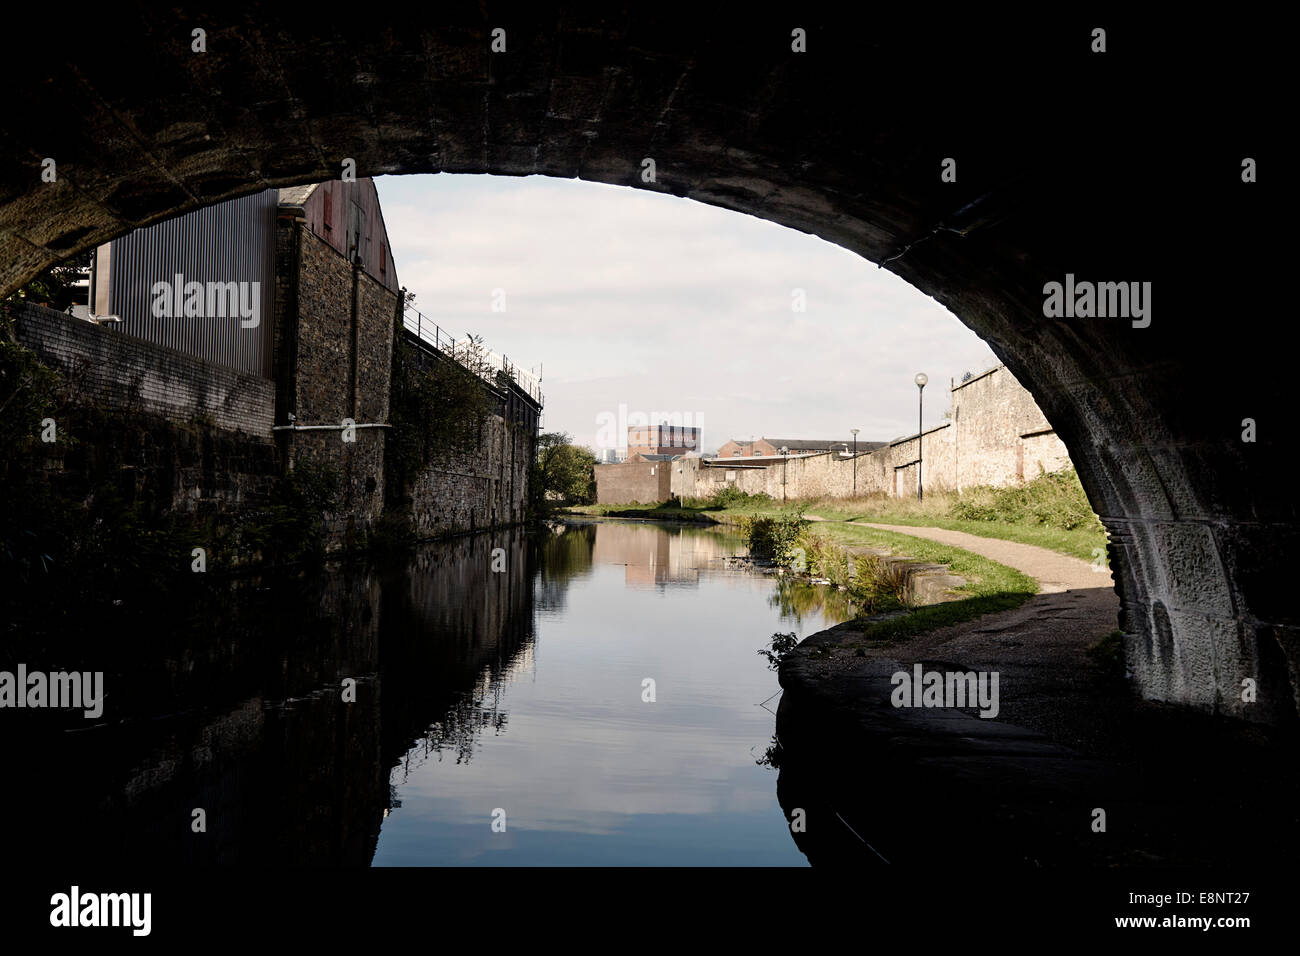 Canal bridge with factories behind in Blackburn - Stock Image